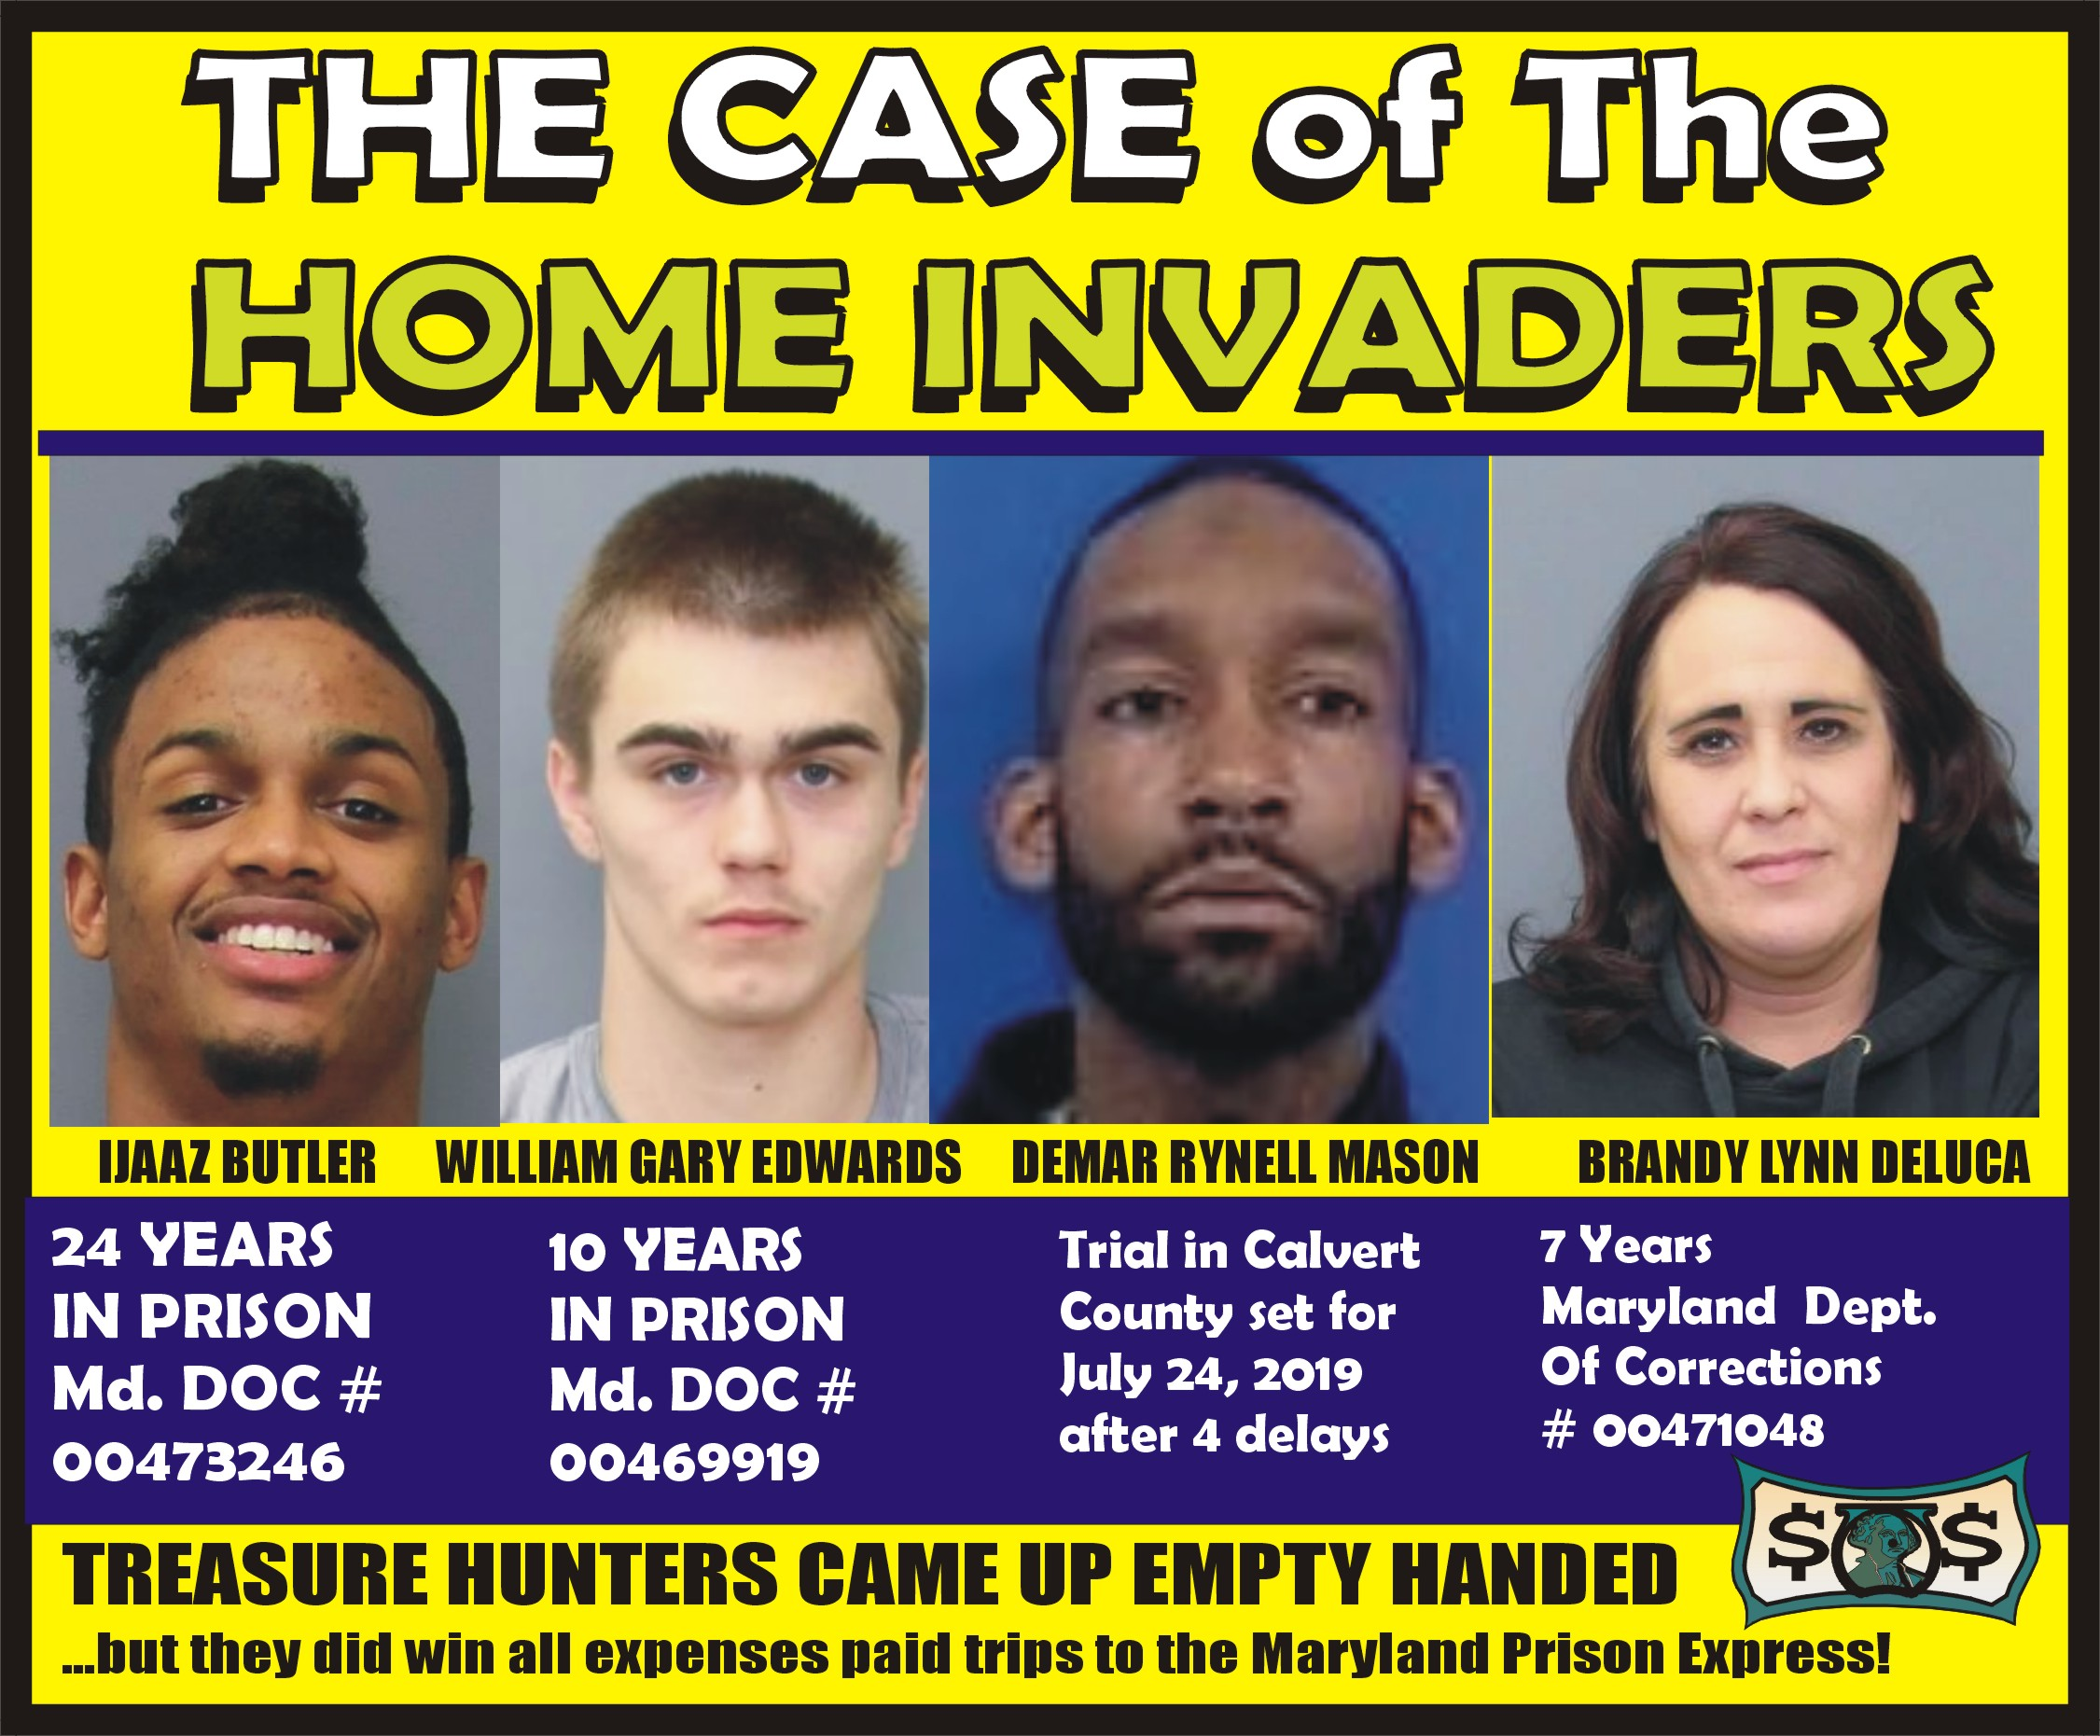 MURDER USA: Ijaaz Butler and his treasure hunters will have to do their next home invasions in prison; his gang of goofballs awaits last gang member to join them in the slammer